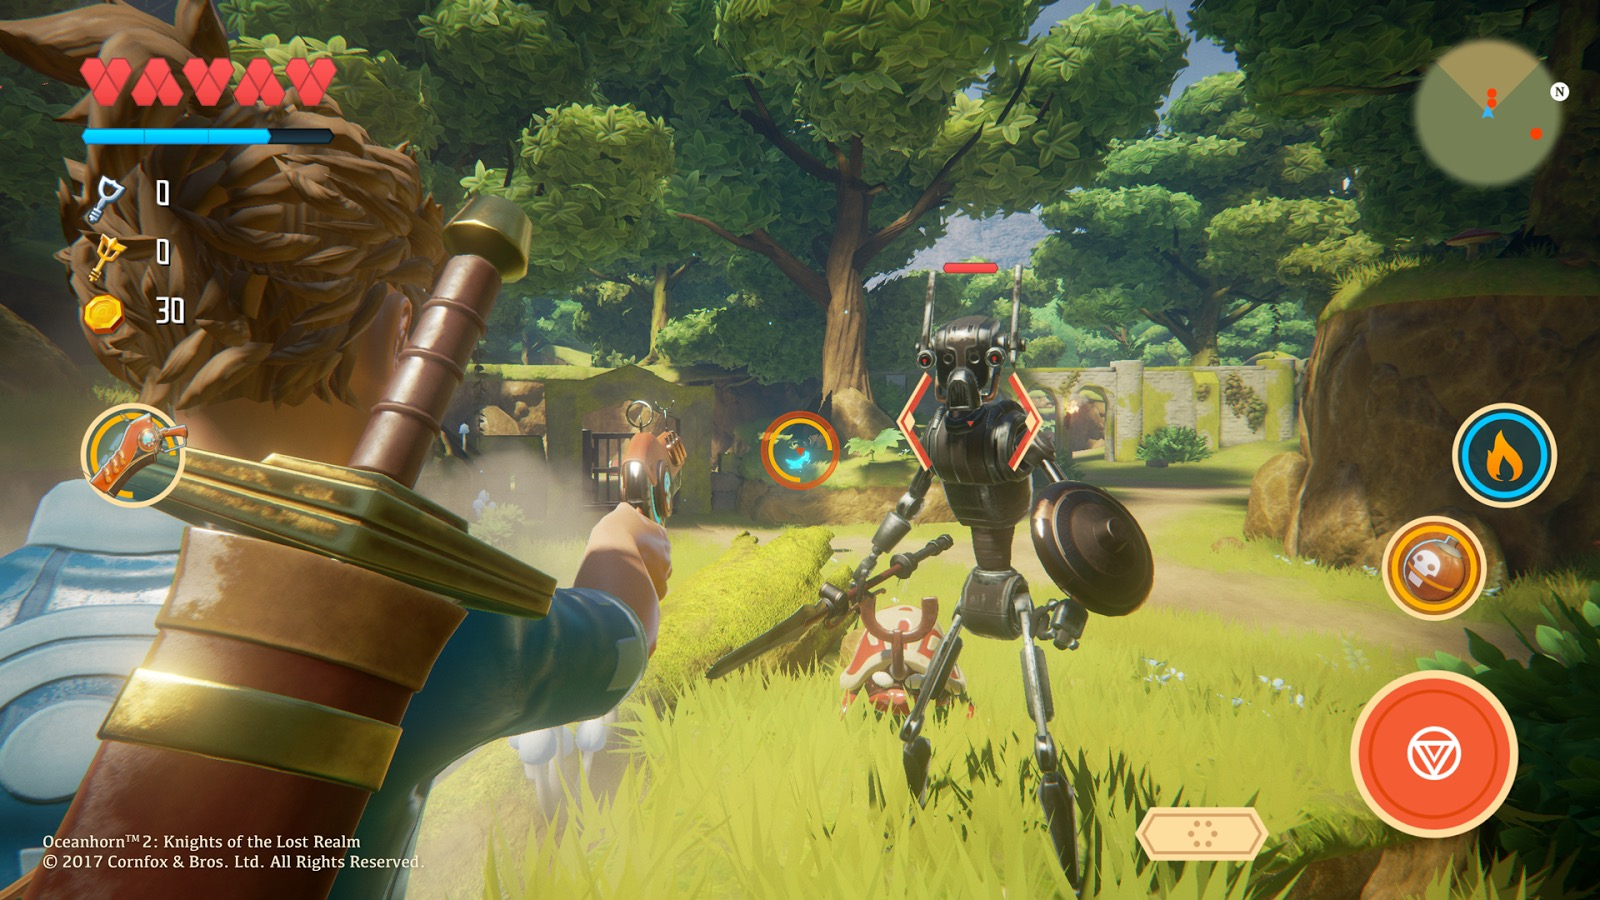 Oceanhorn 2' Being Made in Unreal Engine 4, Gorgeous New Screens